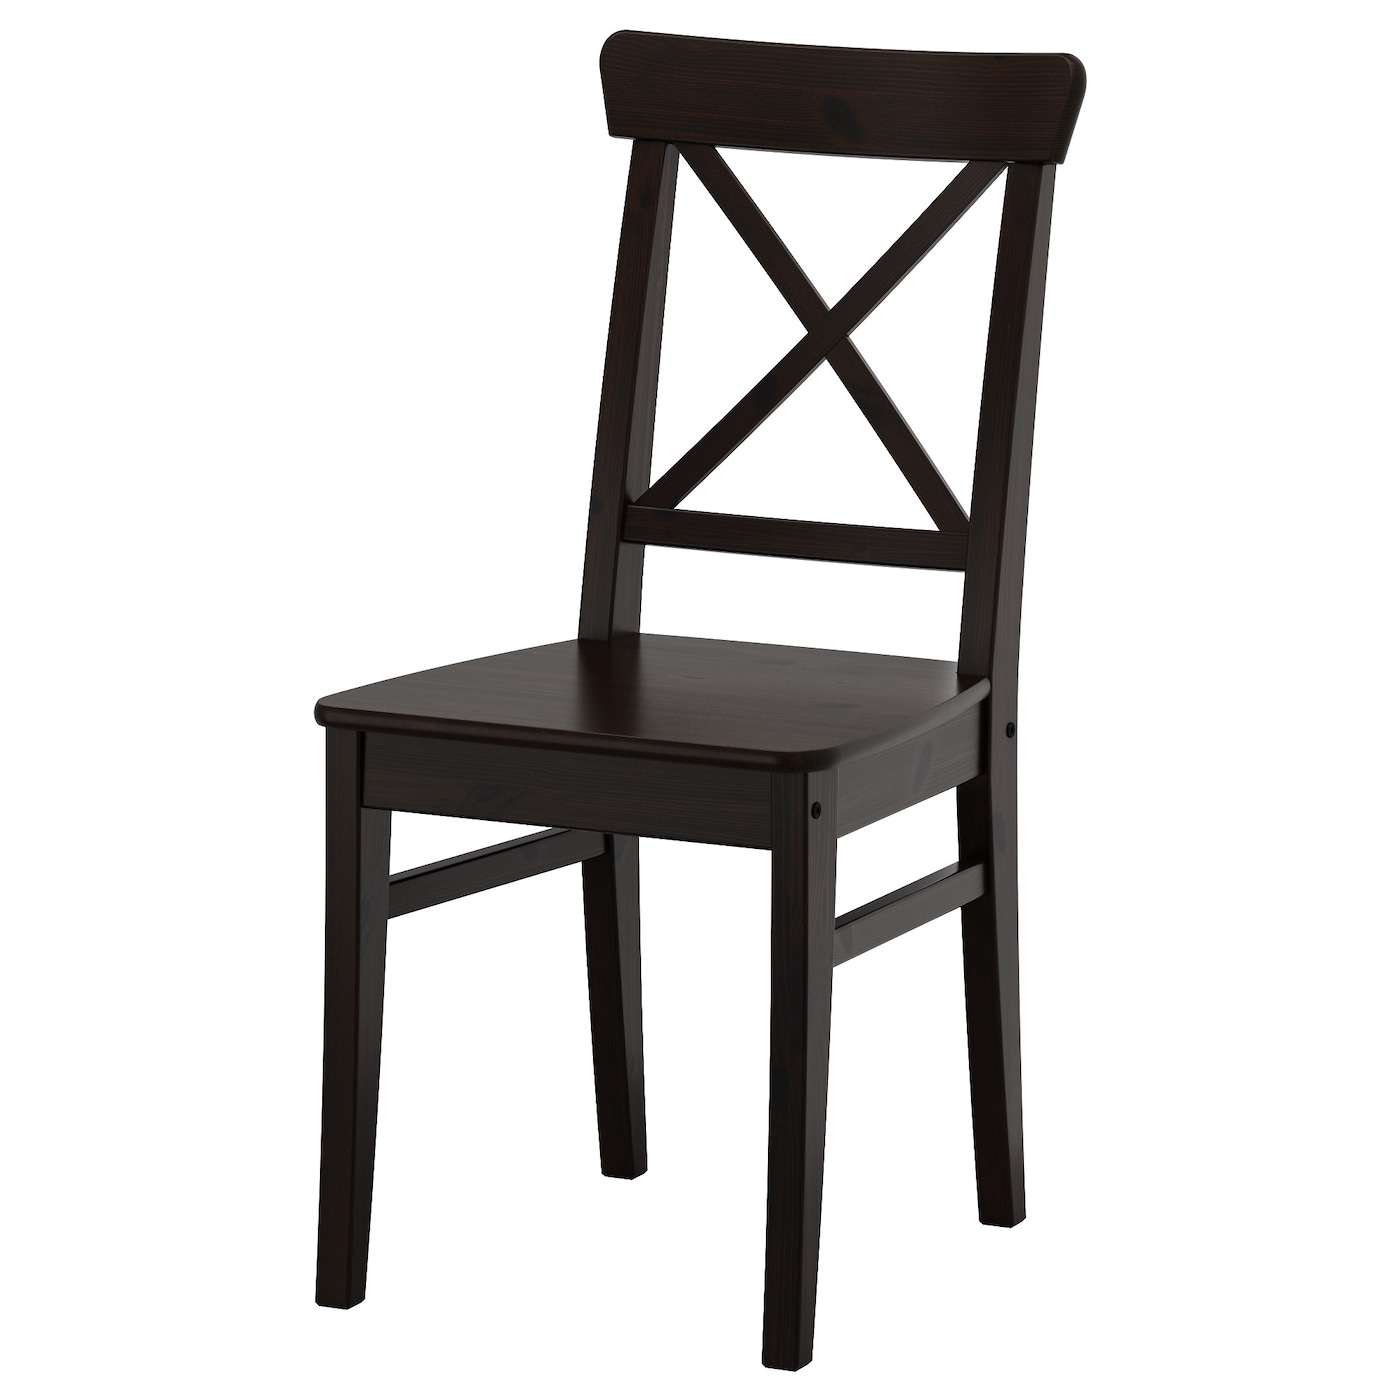 Charmant IKEA INGOLF Chair You Sit Comfortably Thanks To The High Back.